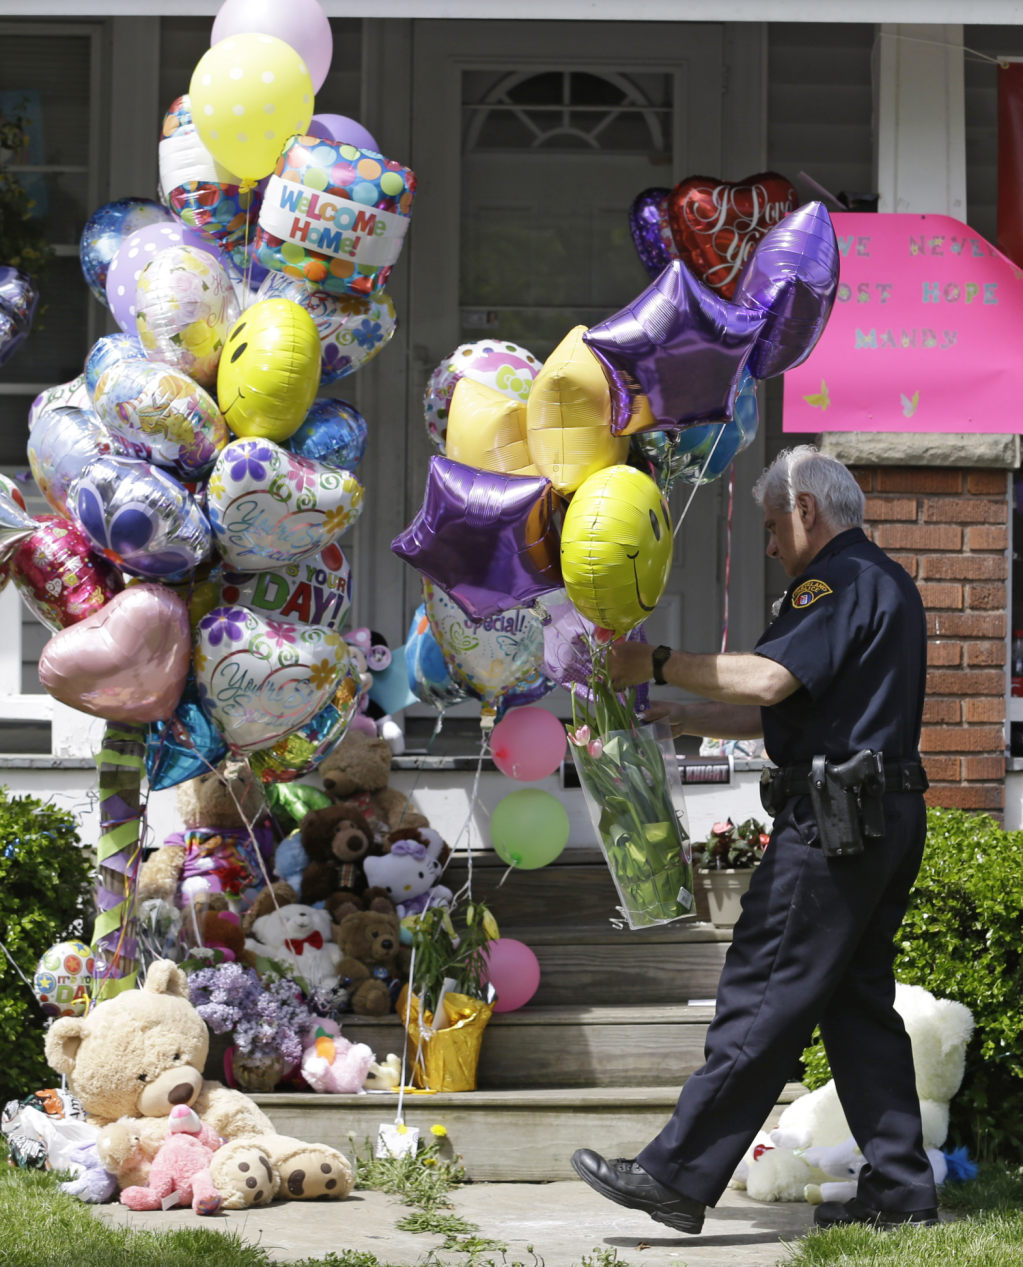 A Cleveland policeman carries balloons and flowers to the front porch of a home awaiting the arrival of Amanda Berry Wednesday, May 8, 2013